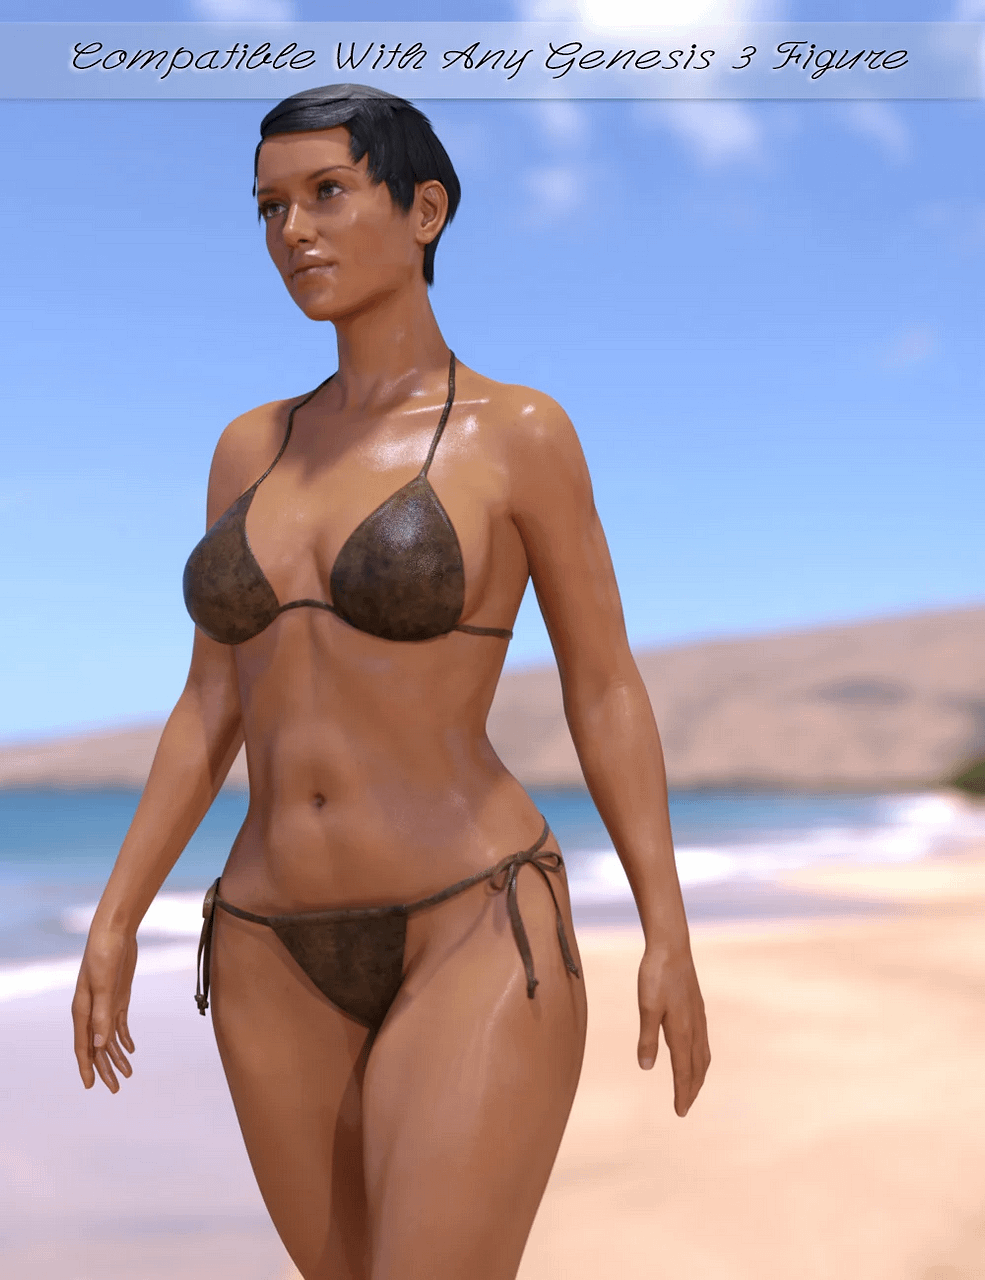 daz wet and tanned skins genesis3